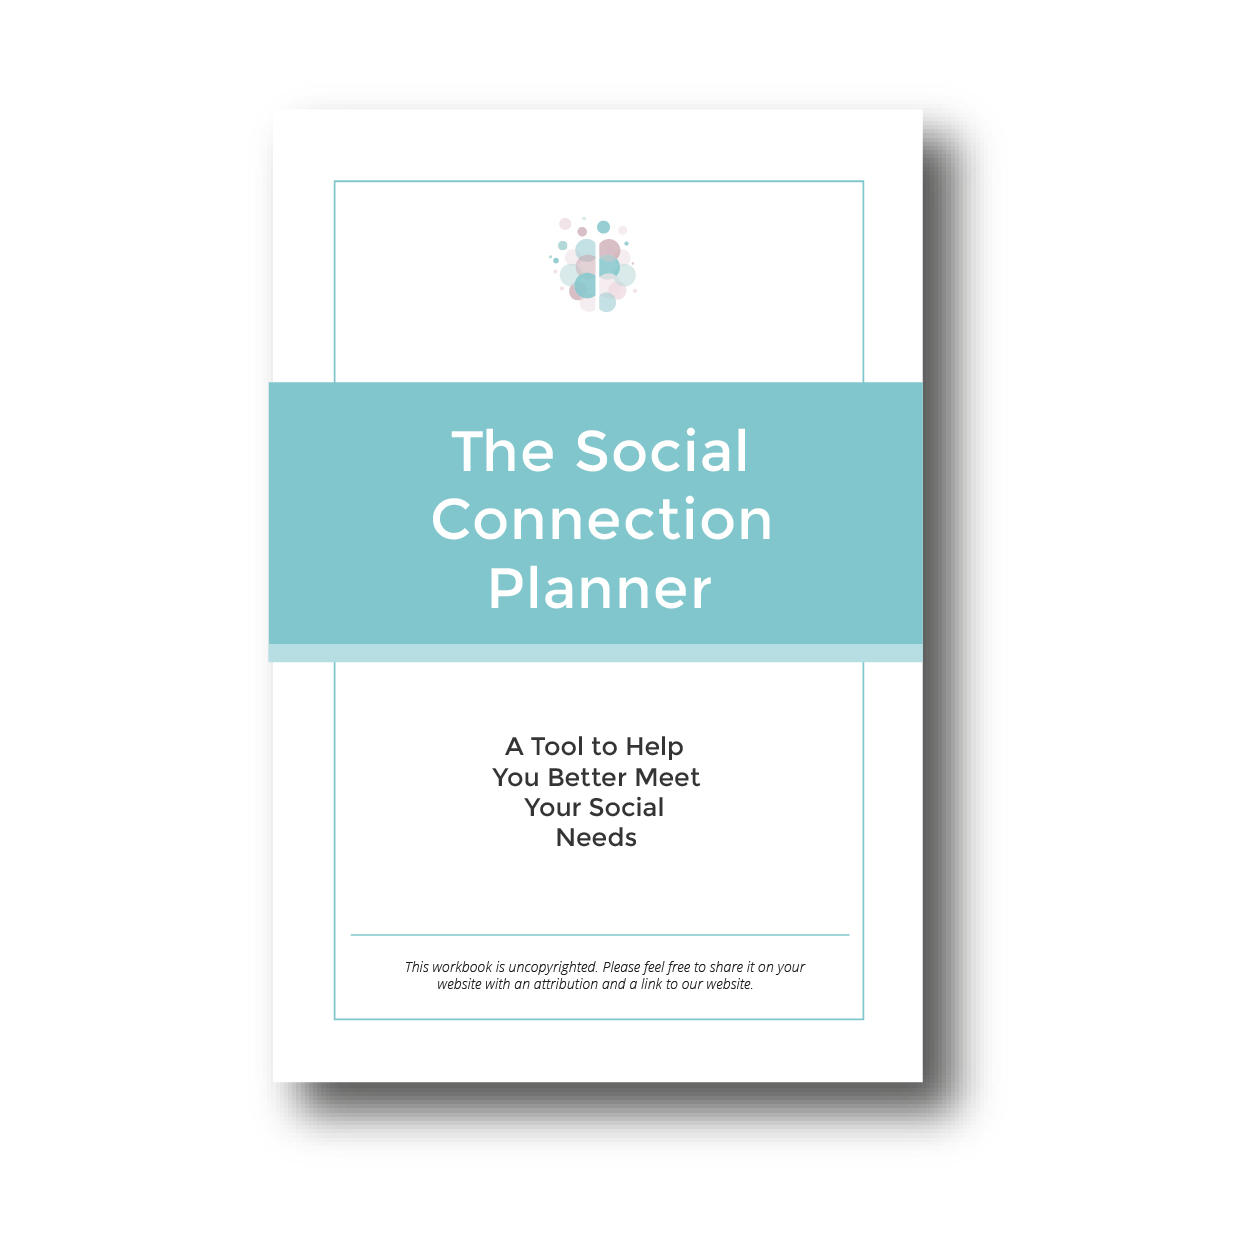 The Social Connection Planner